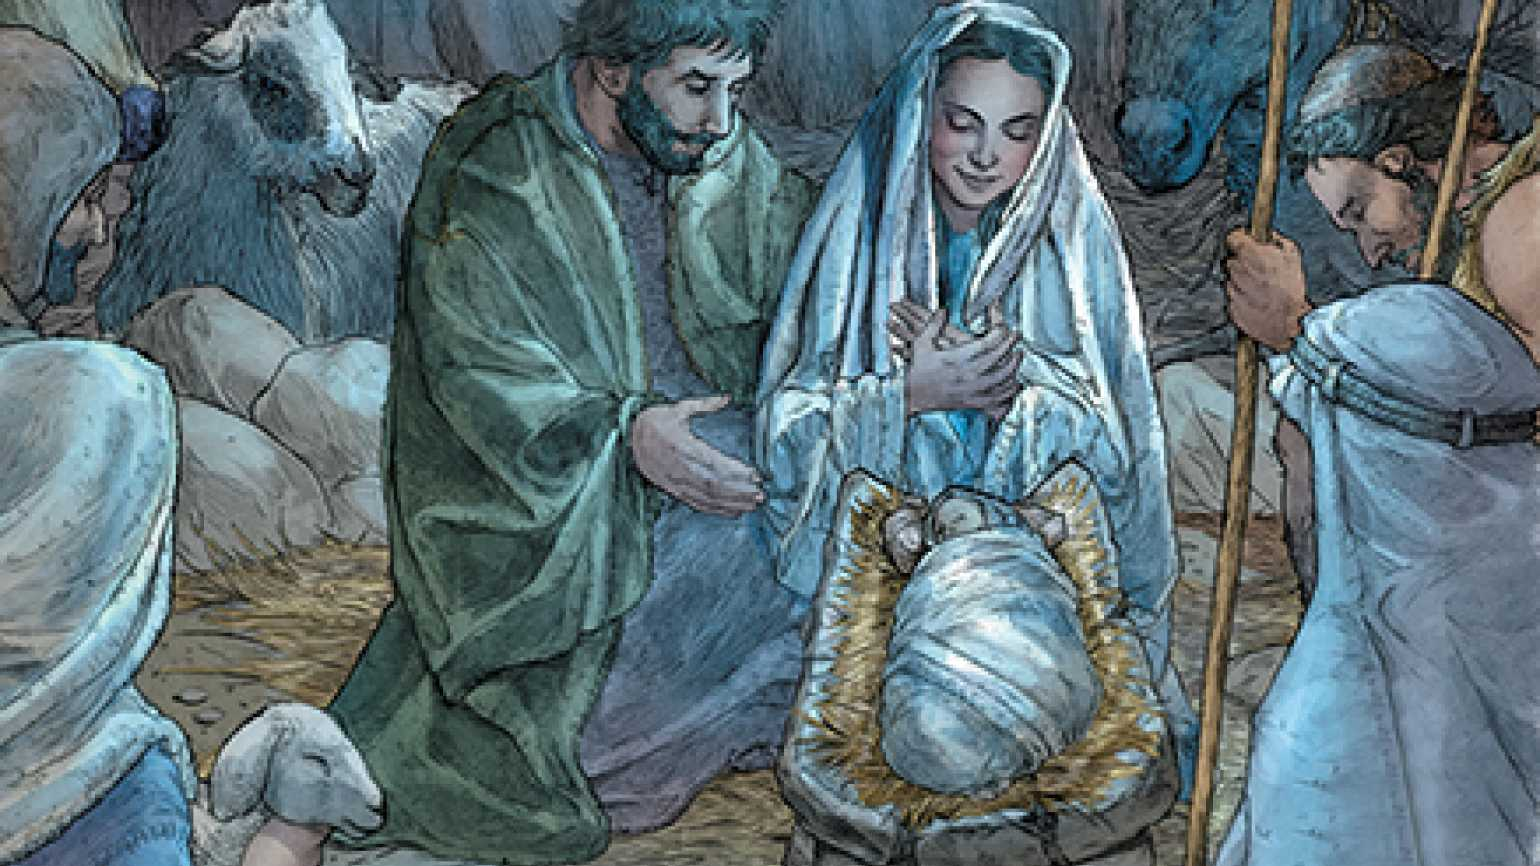 An illustration from Billy Tucci's book, showing Mary and Joseph in the stable